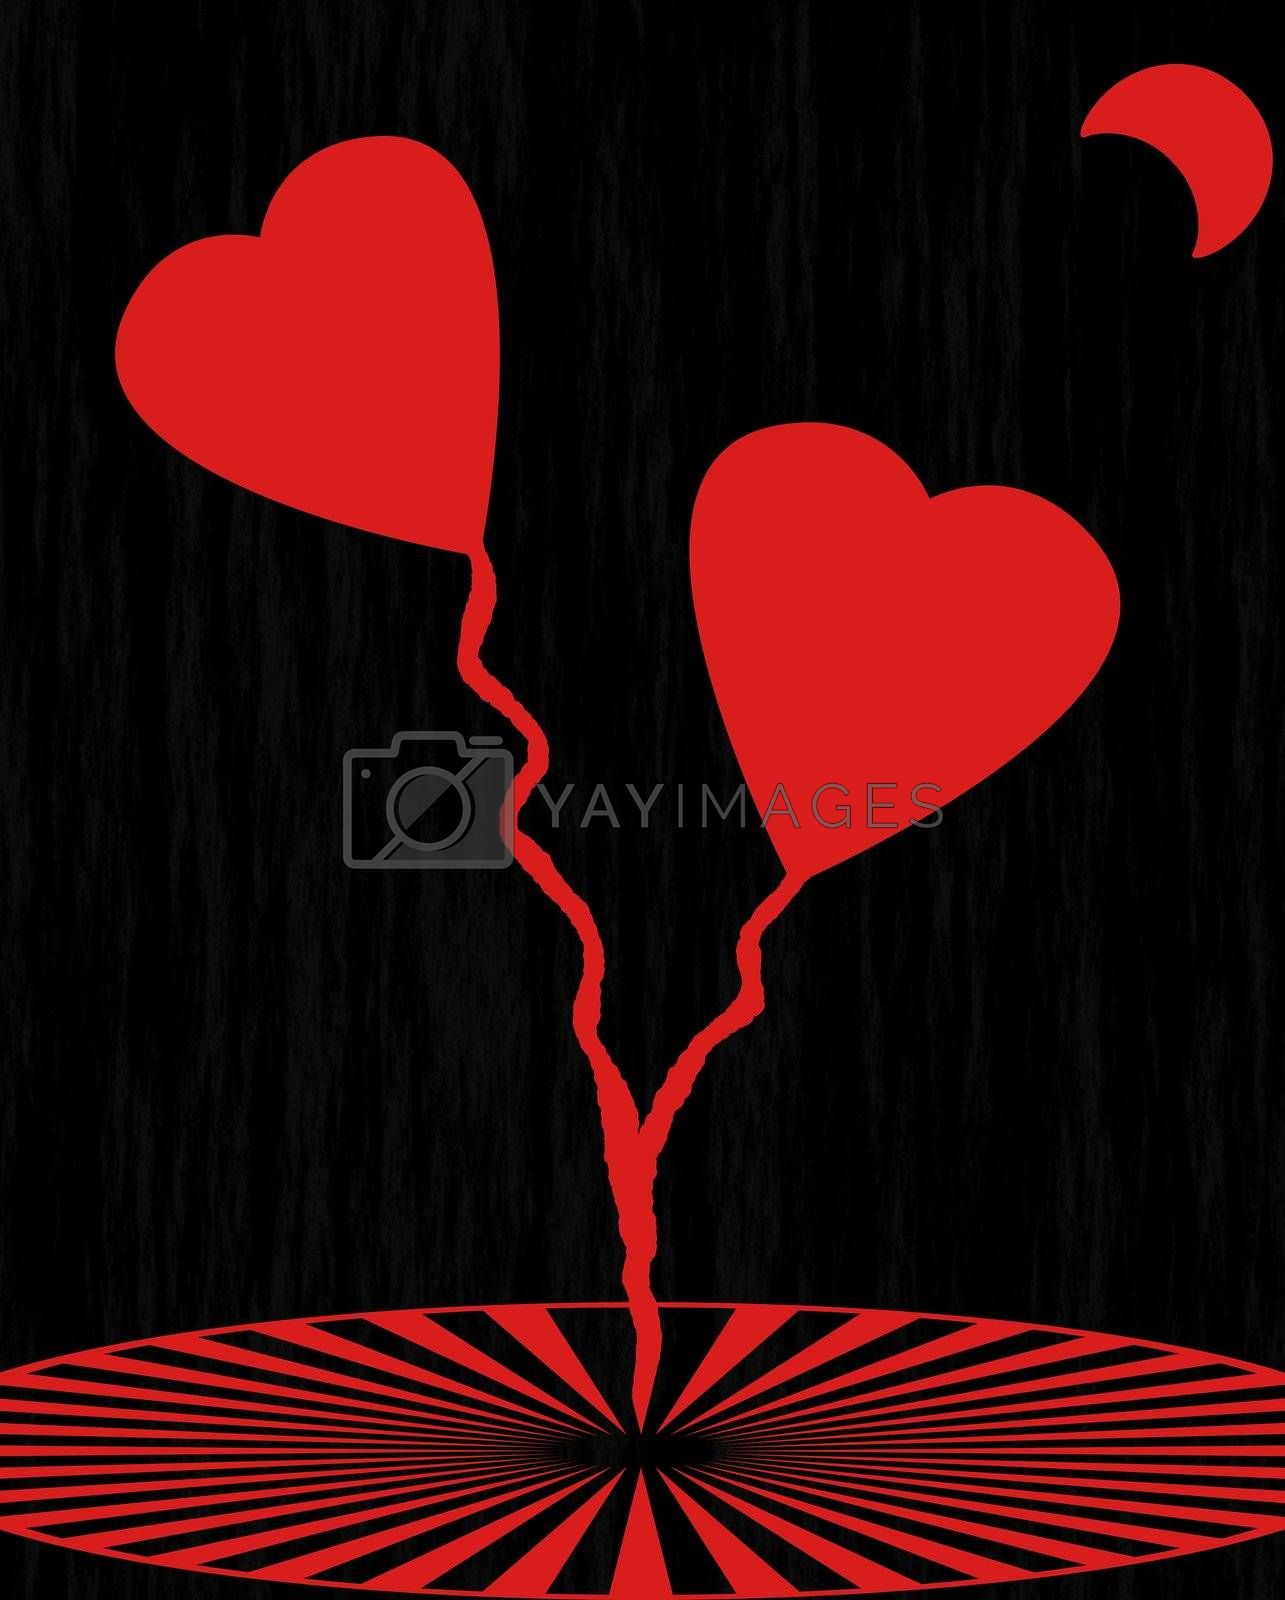 romance in the moonlight, hearts red flowers on black background